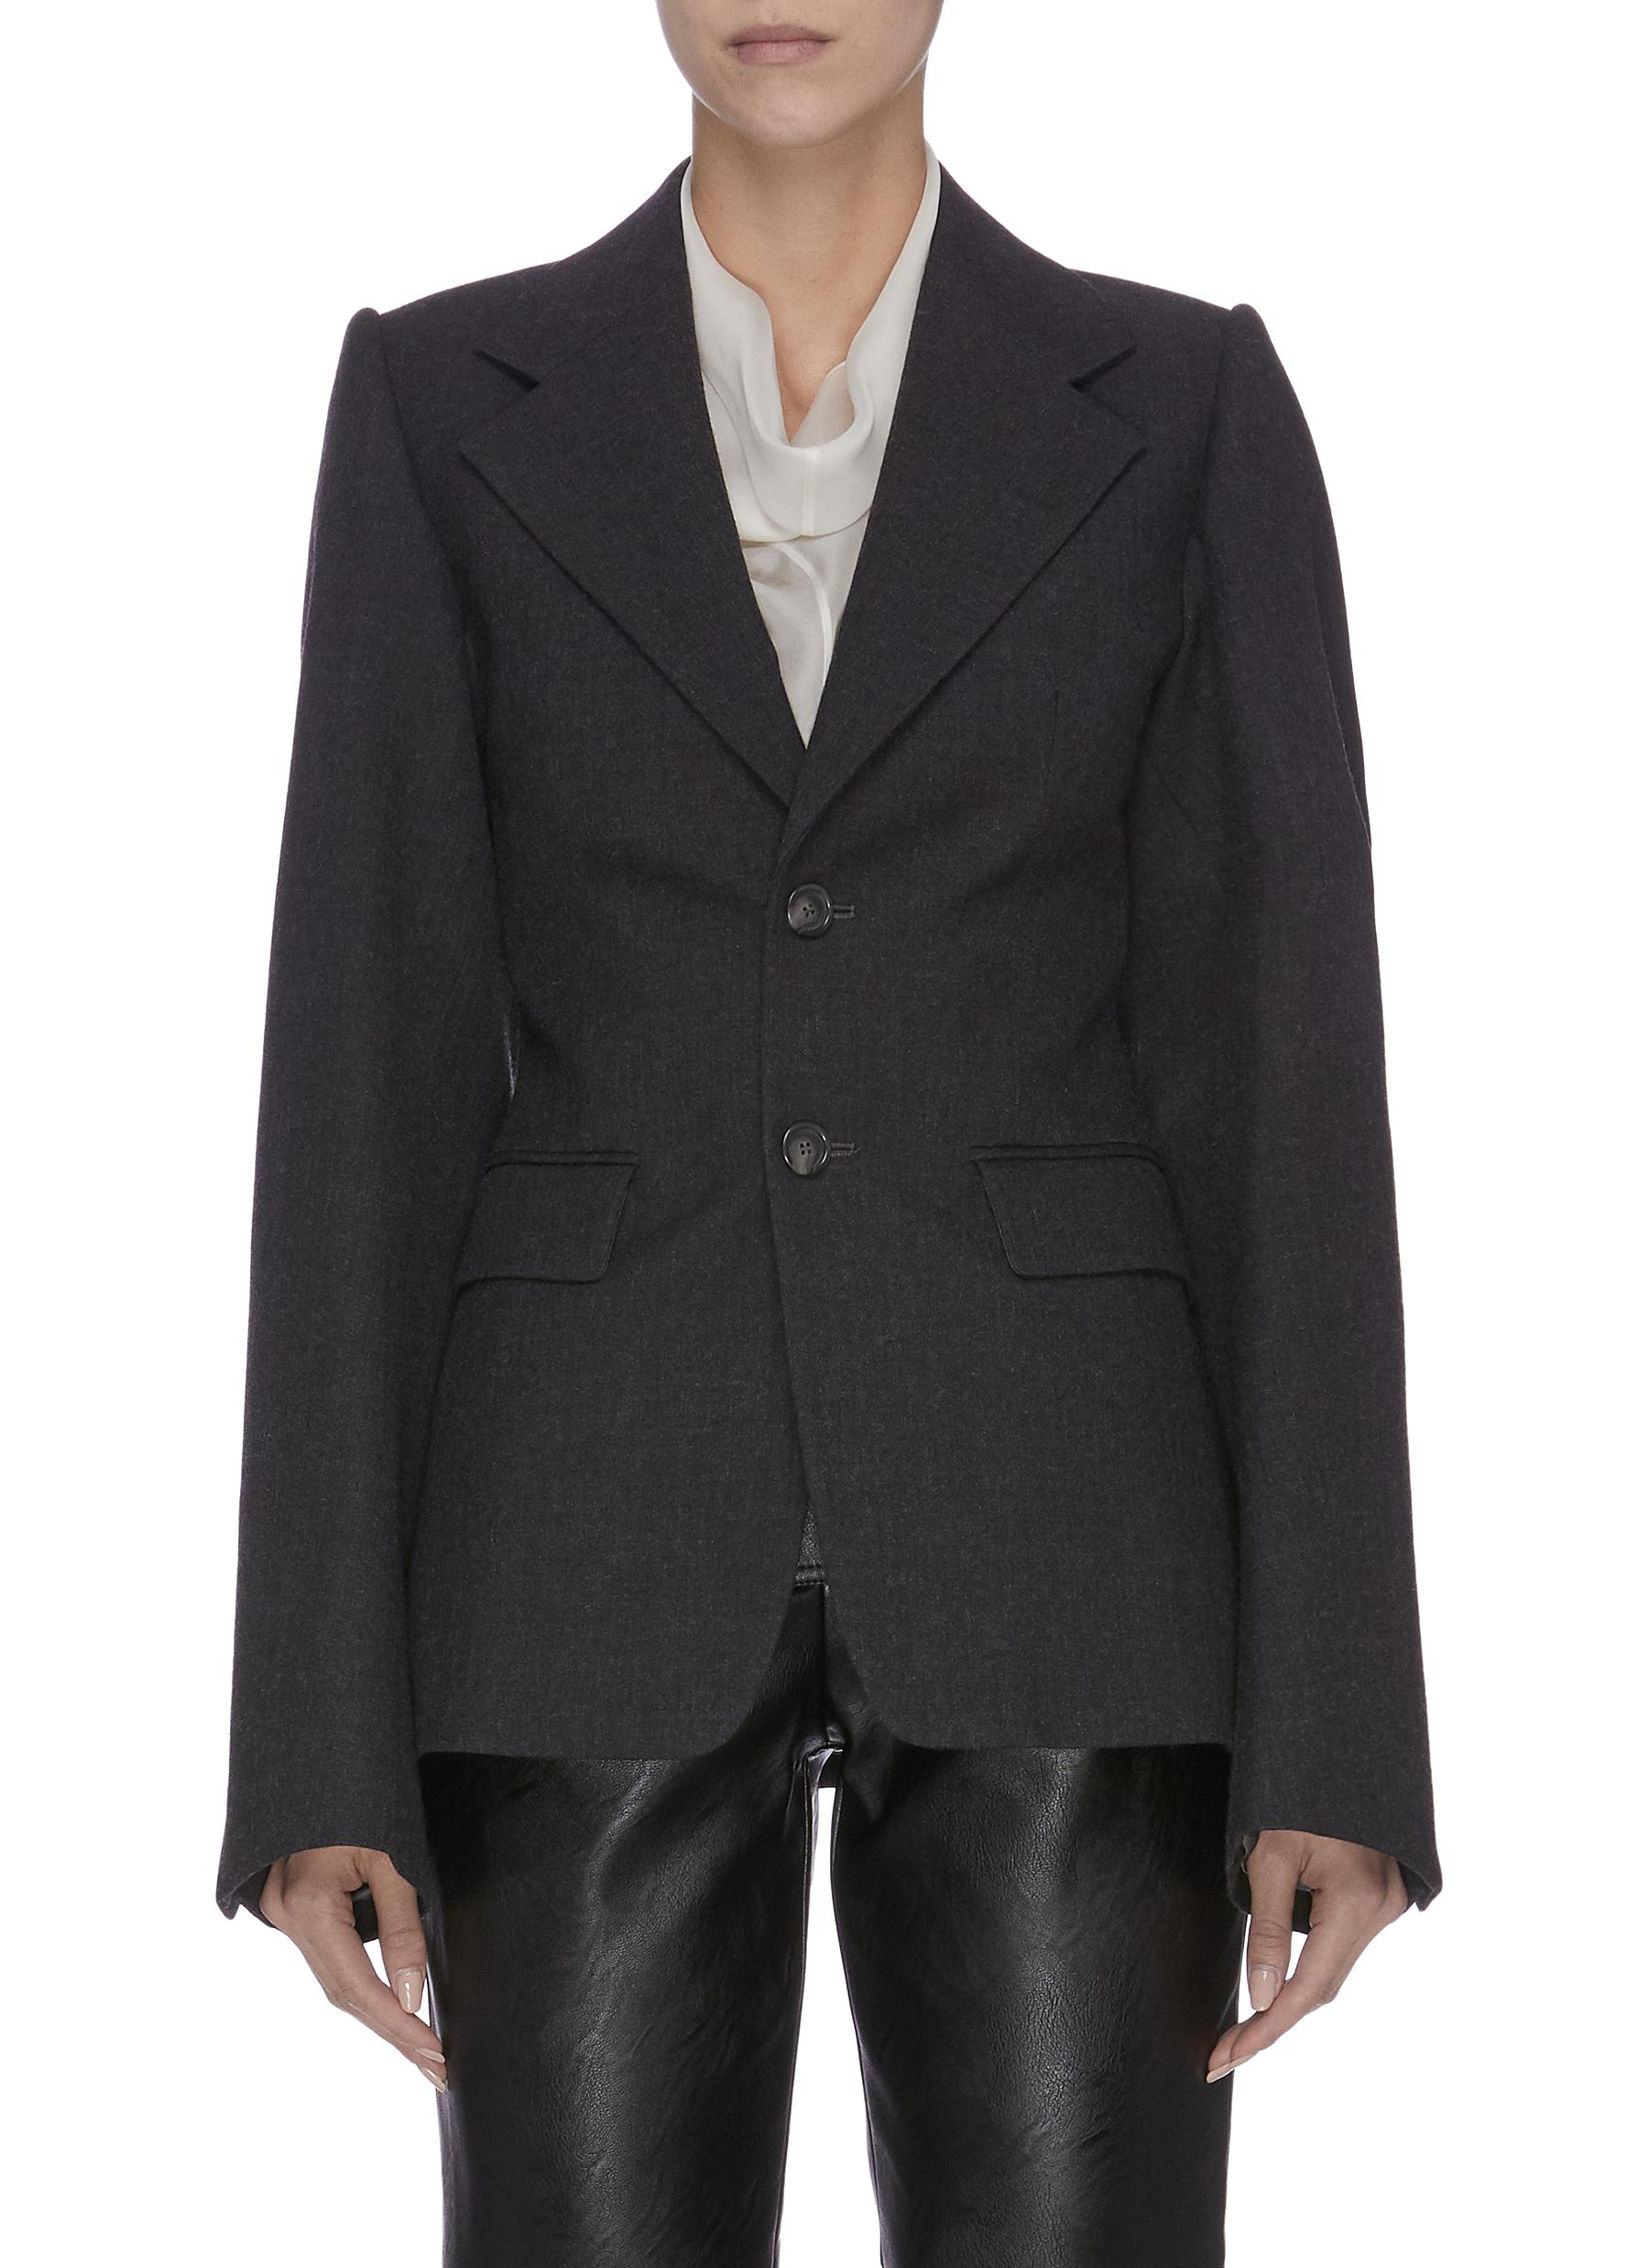 Peaked lapel single-breasted wool blazer by Maison Margiela